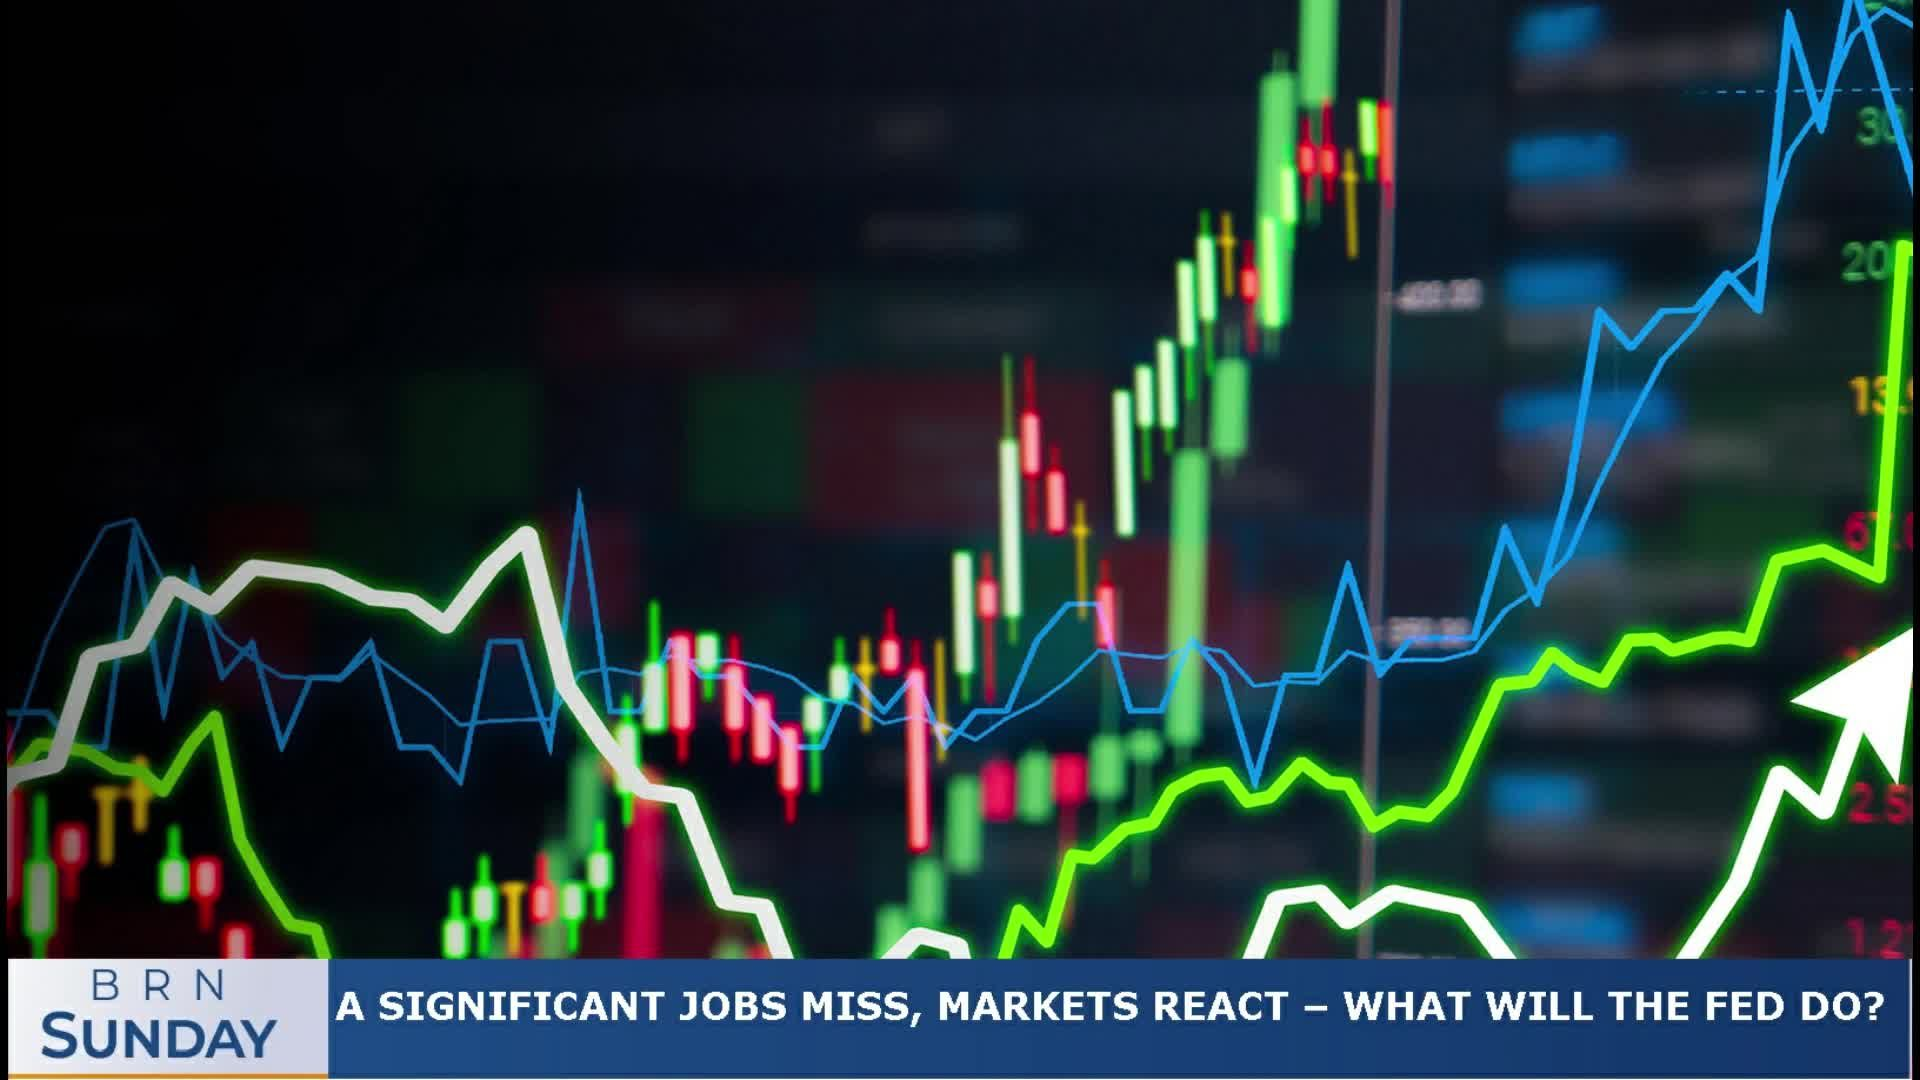 BRN Sunday | a significant jobs miss, markets react – what will the Fed do?